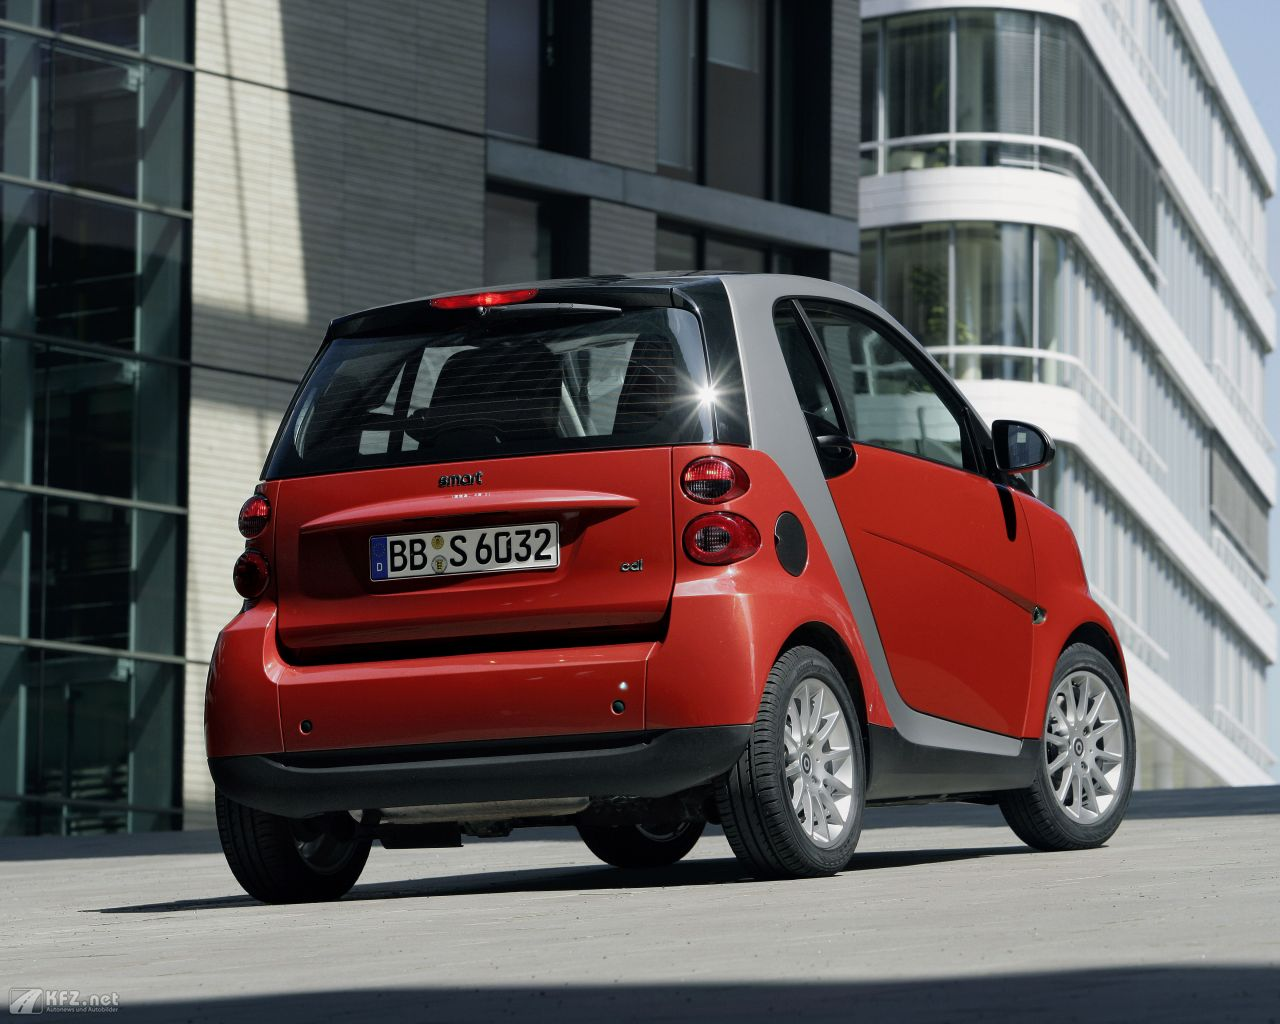 smart-fortwo-1280x1024-6